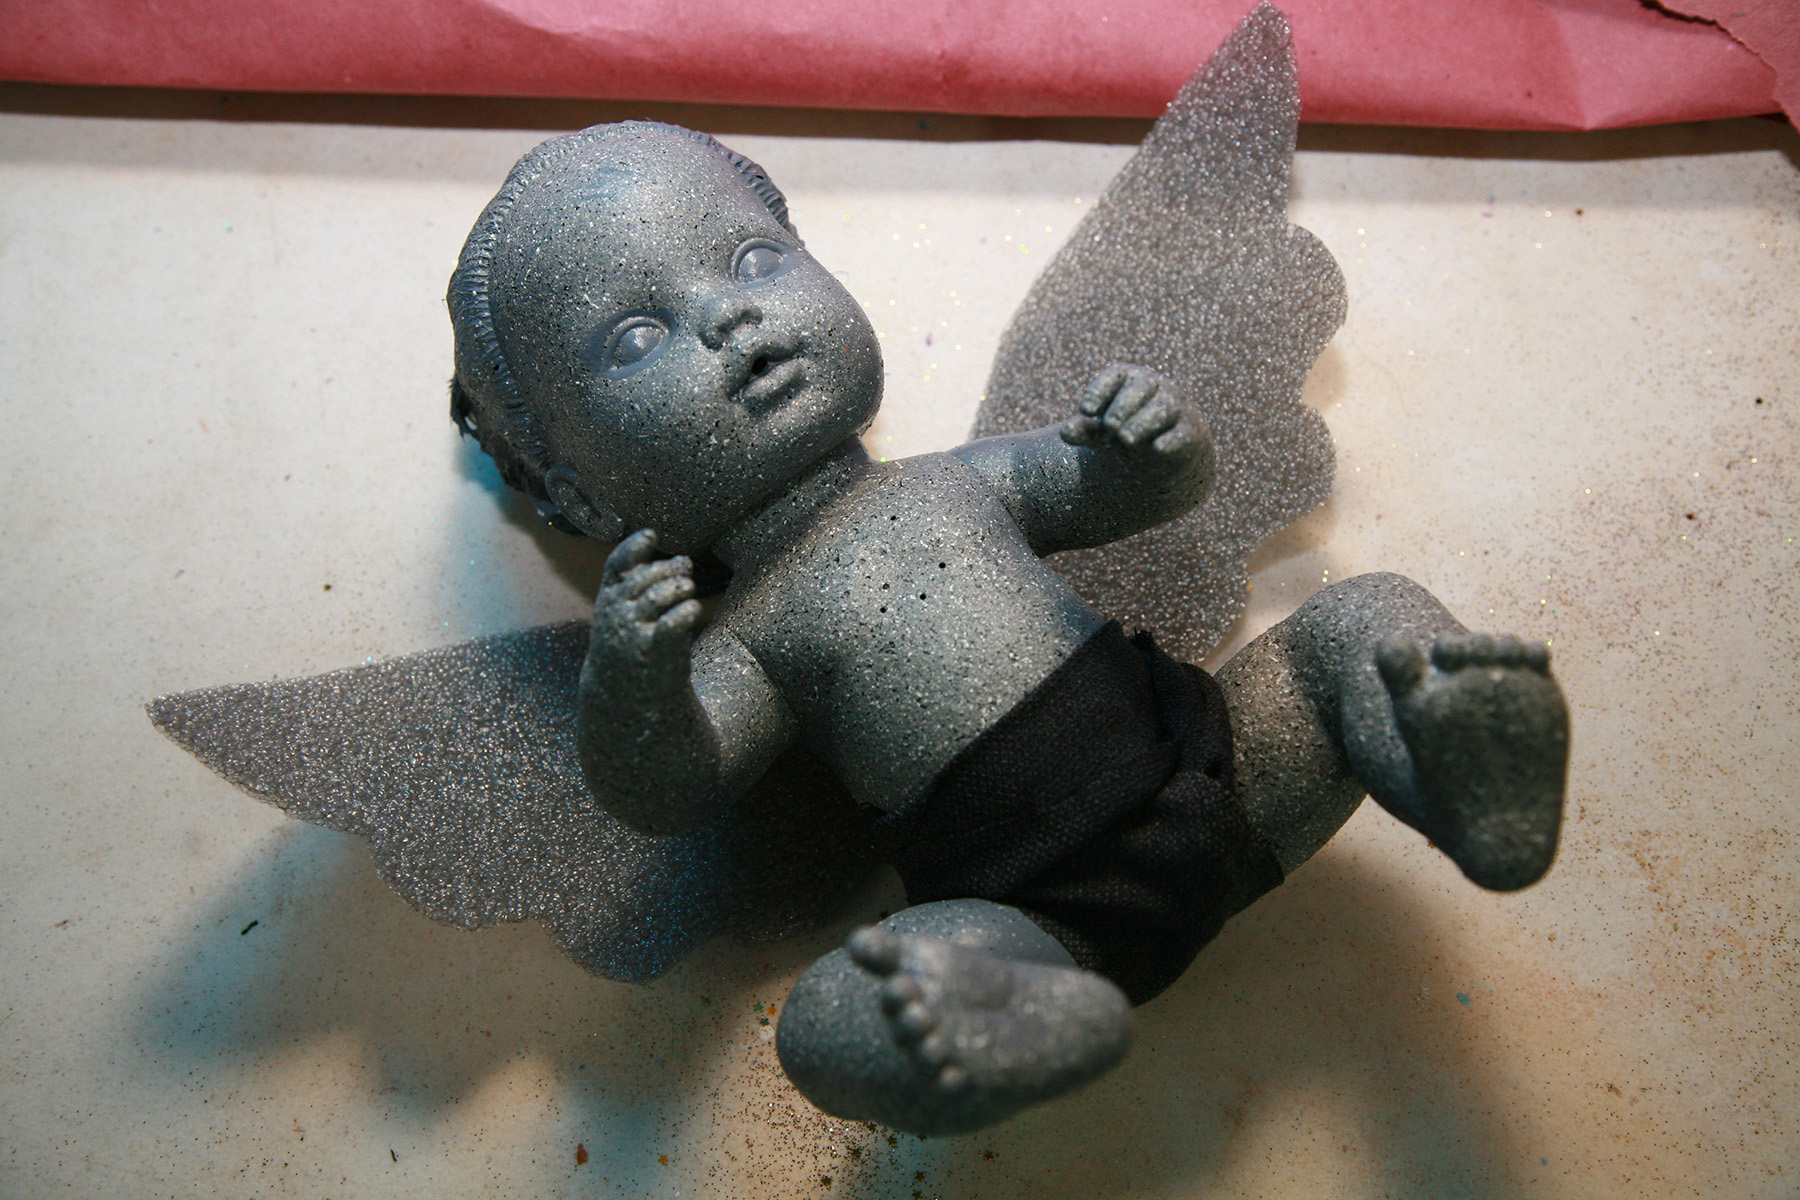 A baby weeping angel doll.